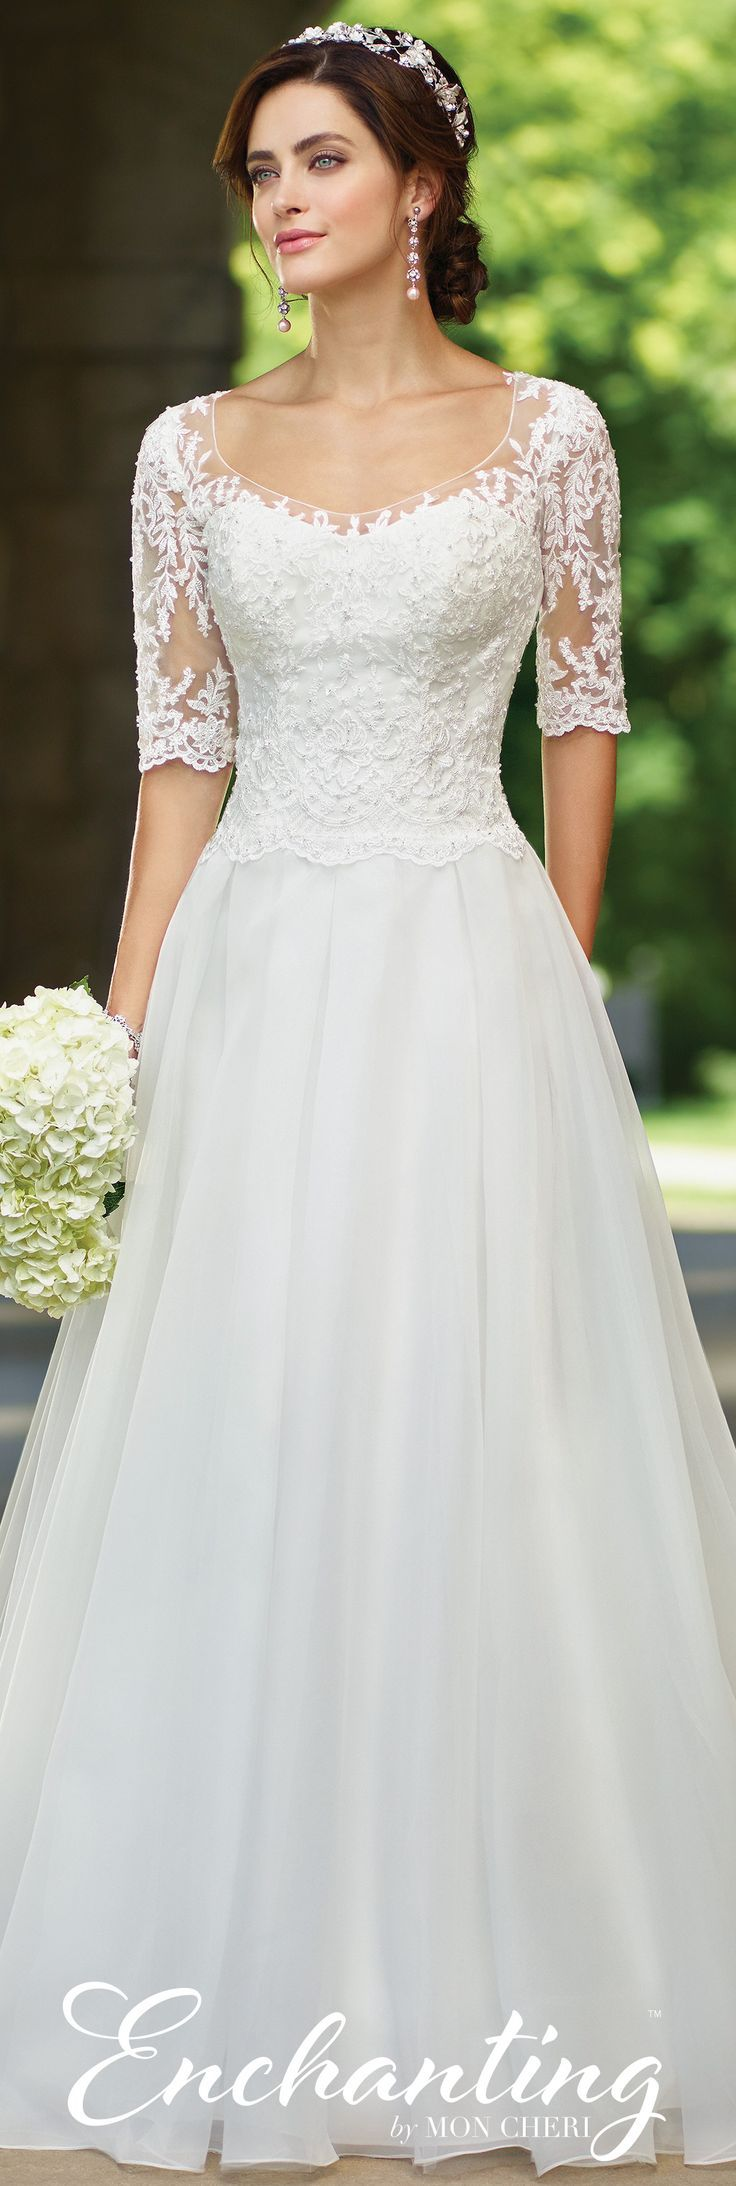 Enchanting by Mon Cheri Spring 2017 Wedding Gown Collection - Style No. 117177 - organza and lace A-line wedding dress with sleeves #wedding #weddingdress